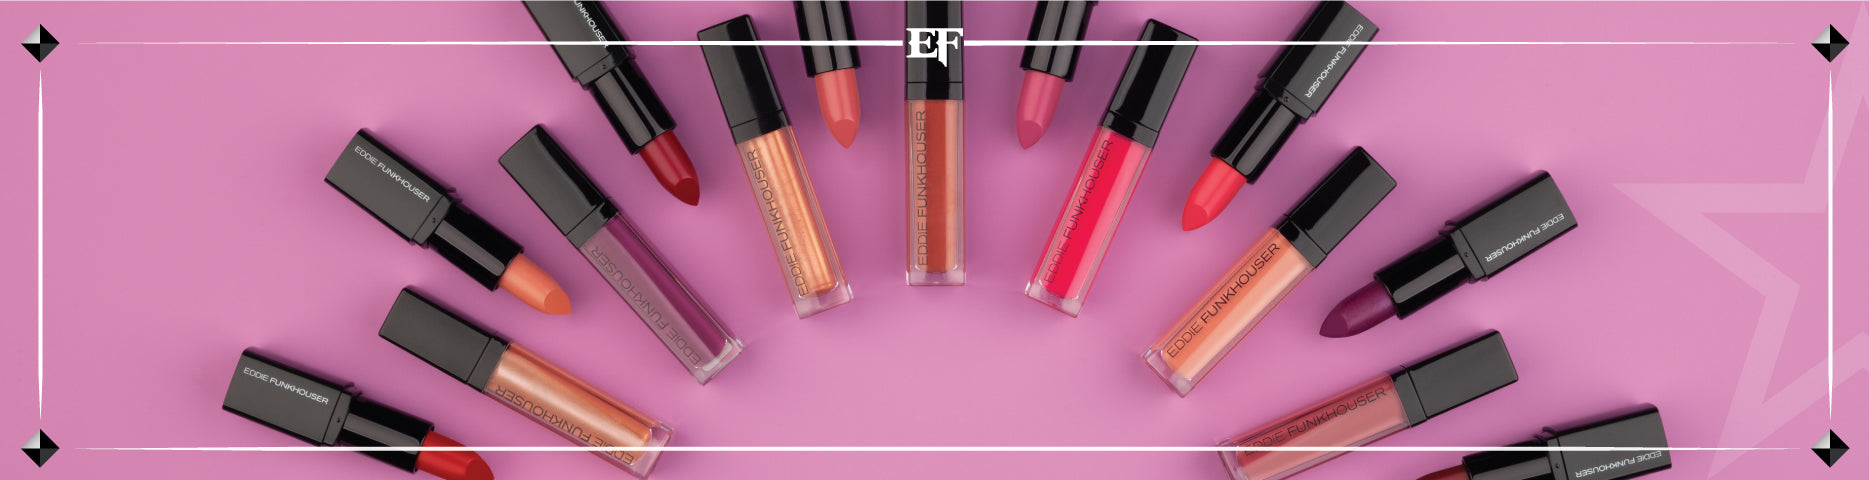 EDDIE FUNKHOUSER Cosmetics Lip Products